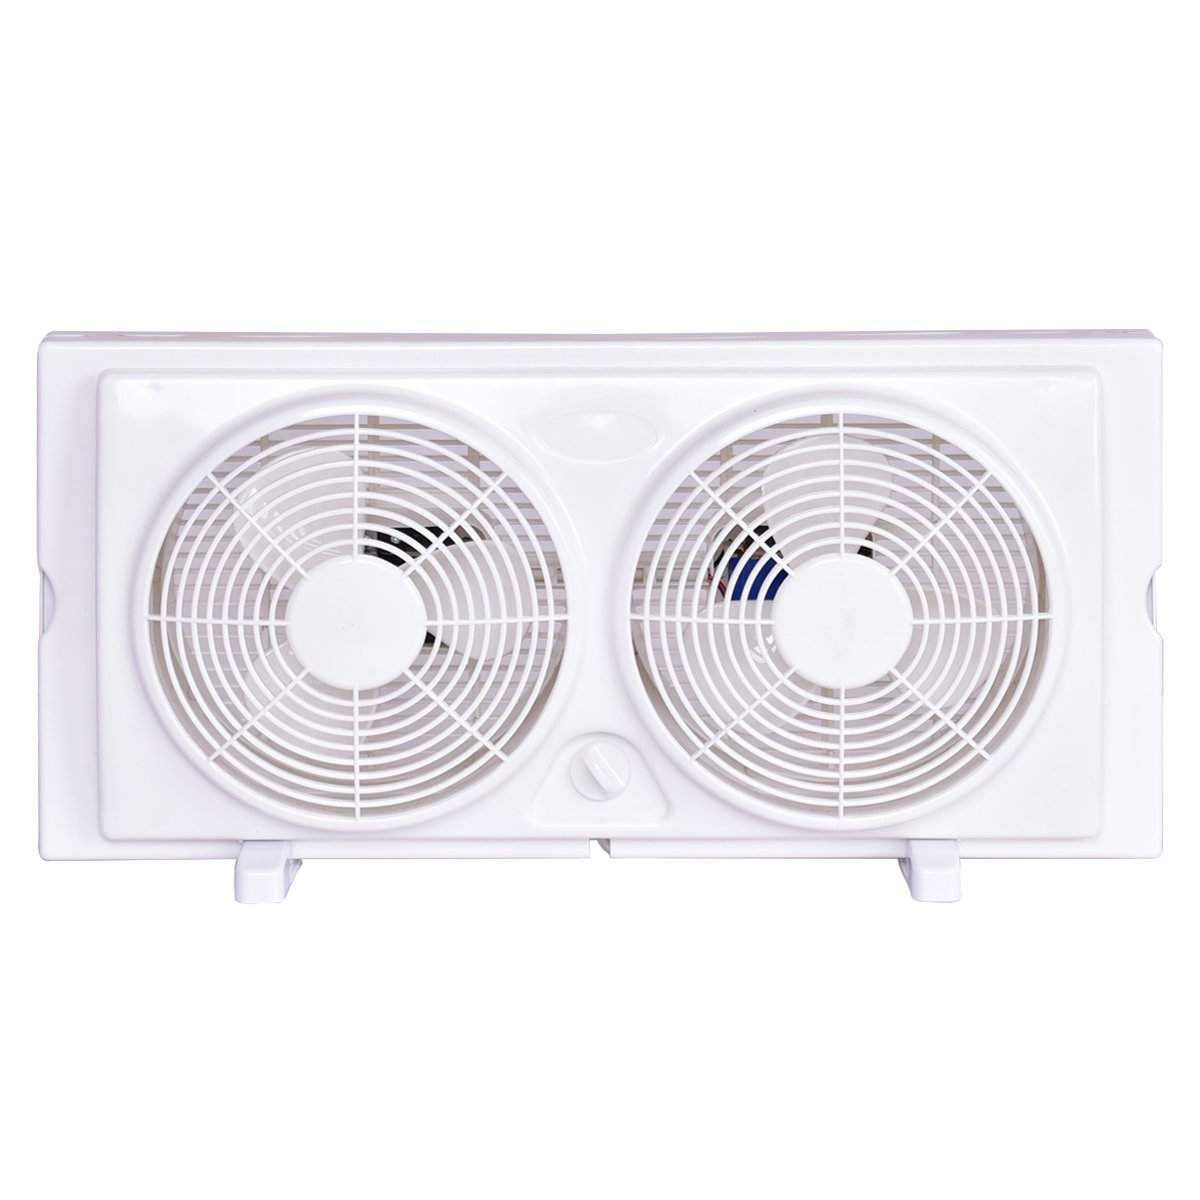 COSTWAY Twin Window Fan 7'' 2-Speed Setting Reversible Airflow Dual Blade Fan w/Manual Control and Removable Legs (White)